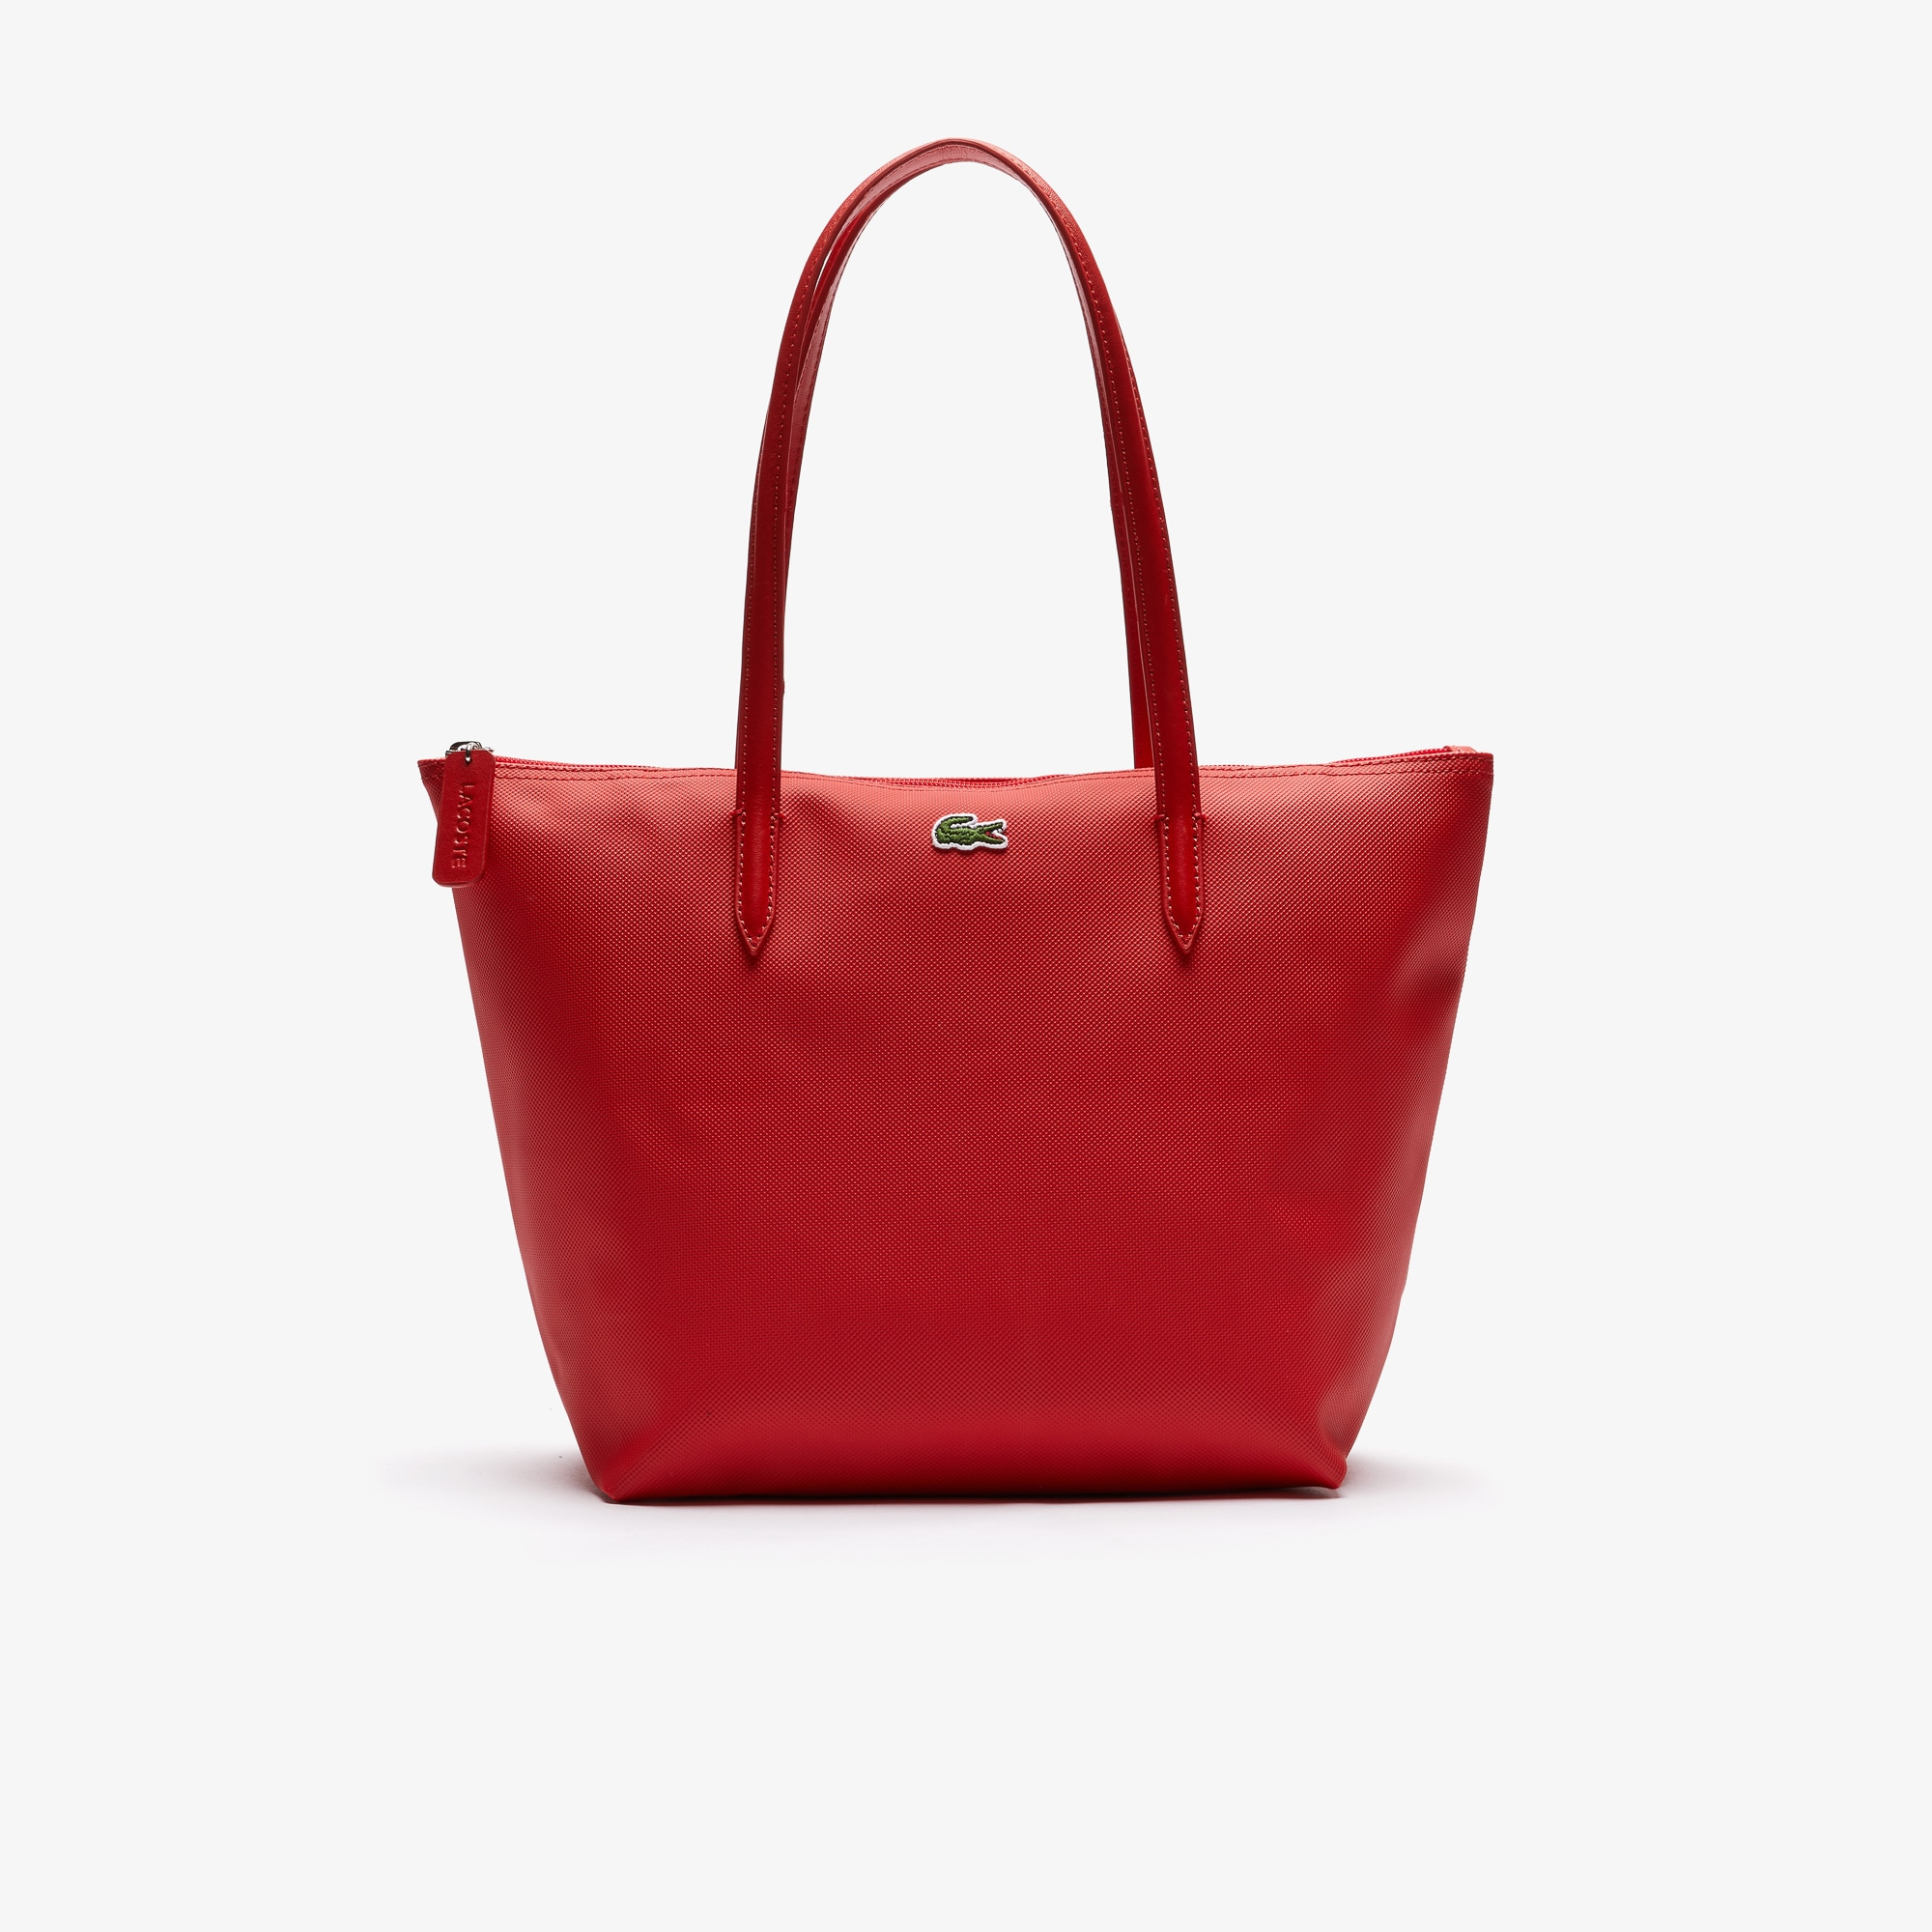 82a52878f8ea Bags & Handbags Collection | Women's Leather Goods | LACOSTE